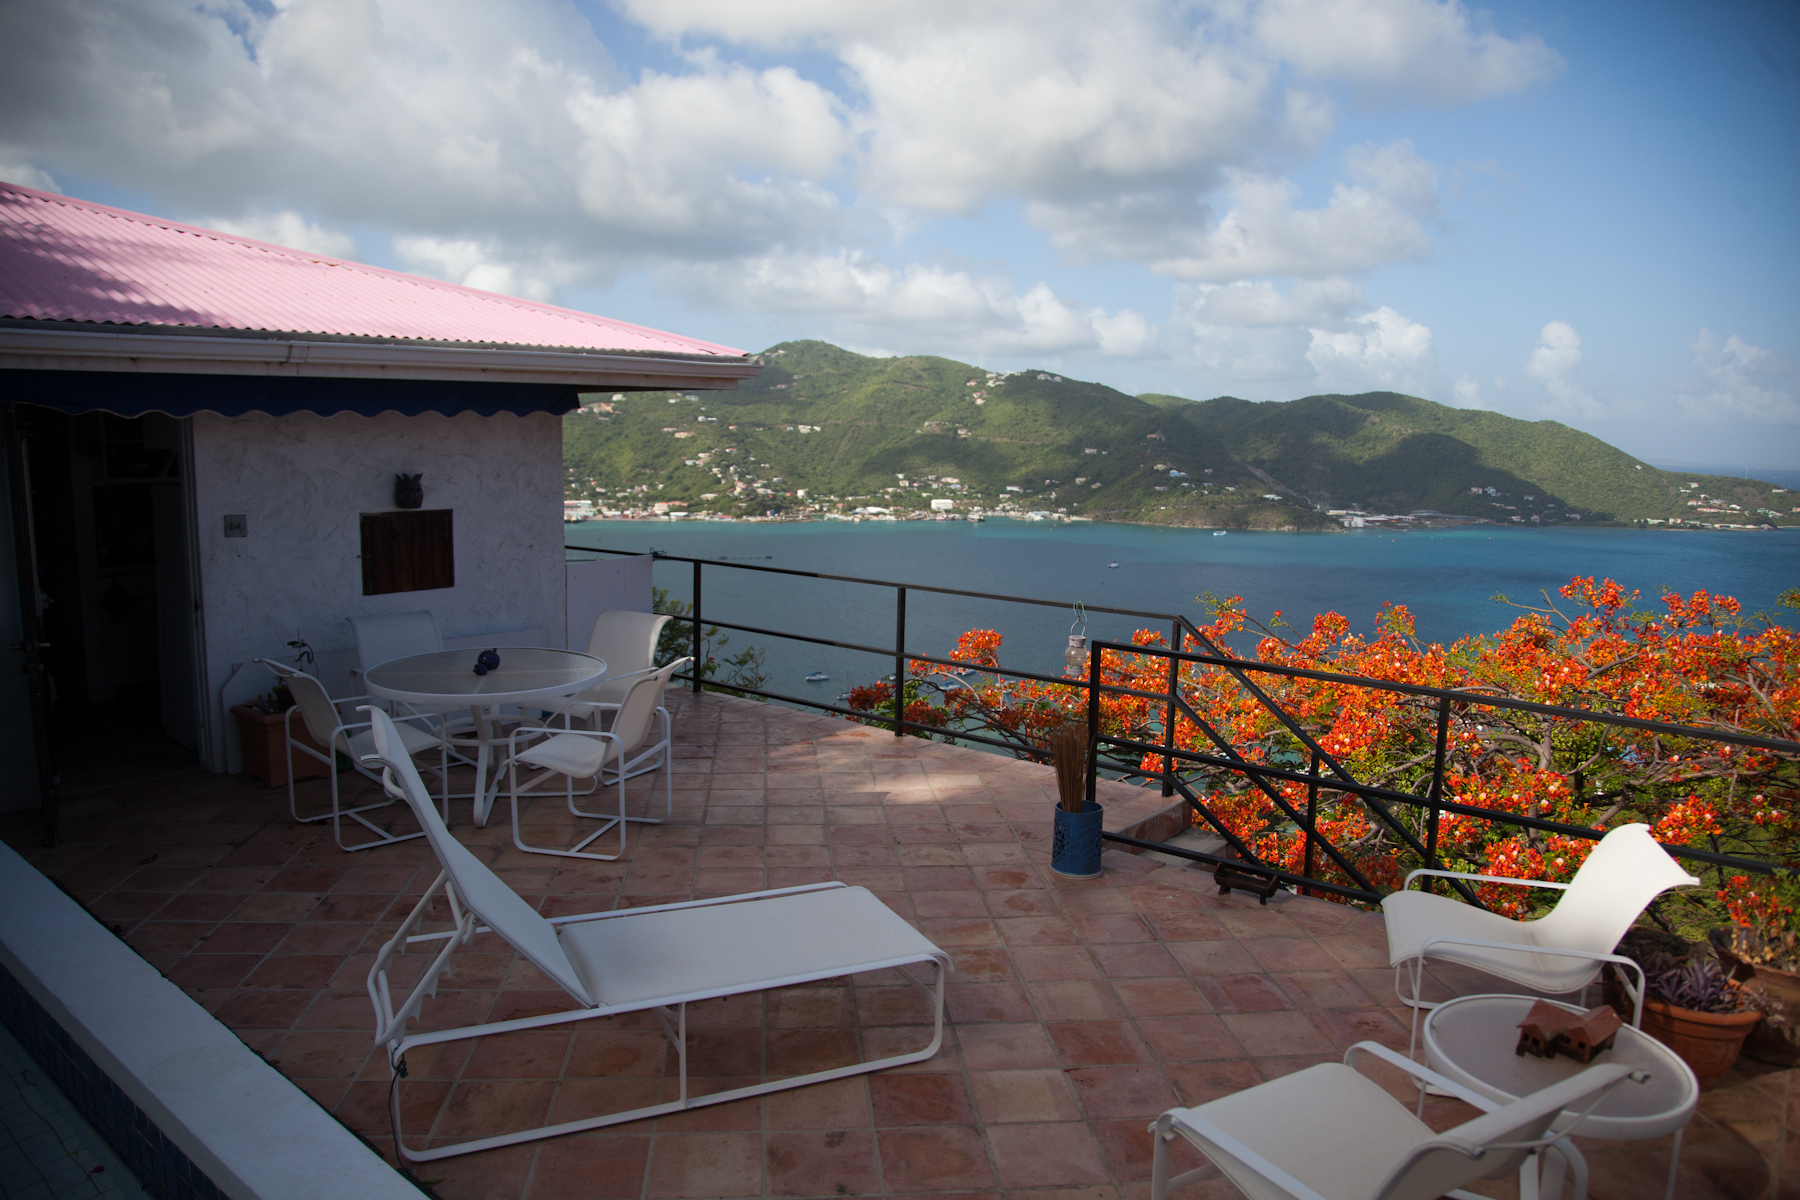 Other Residential for Sale at Sunrise Villa Road Town, Tortola, British Virgin Islands